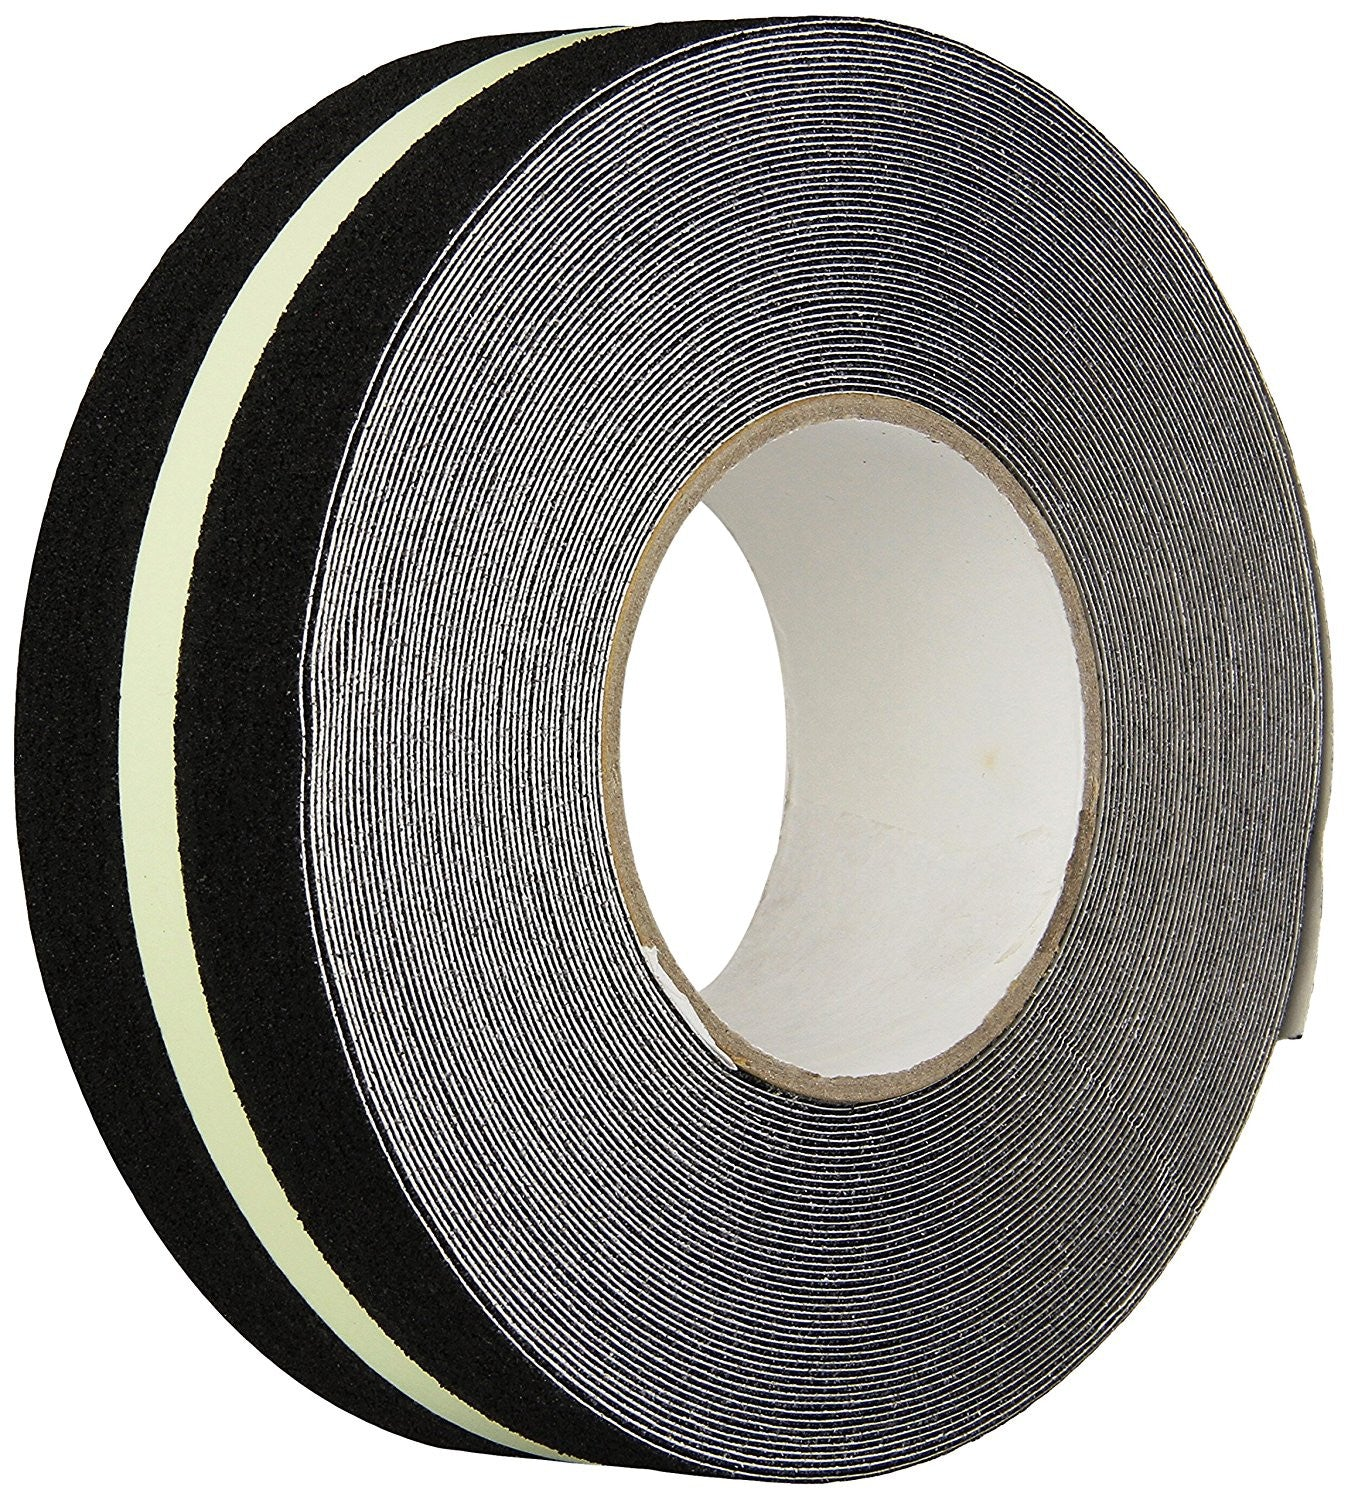 "Buy One Get One FREE - 2"" X 60' Foot Roll Heskins Safety Grip Glow Line Anti Slip Tape - Use Code BOGOFREE When Checking Out - Low Stock"